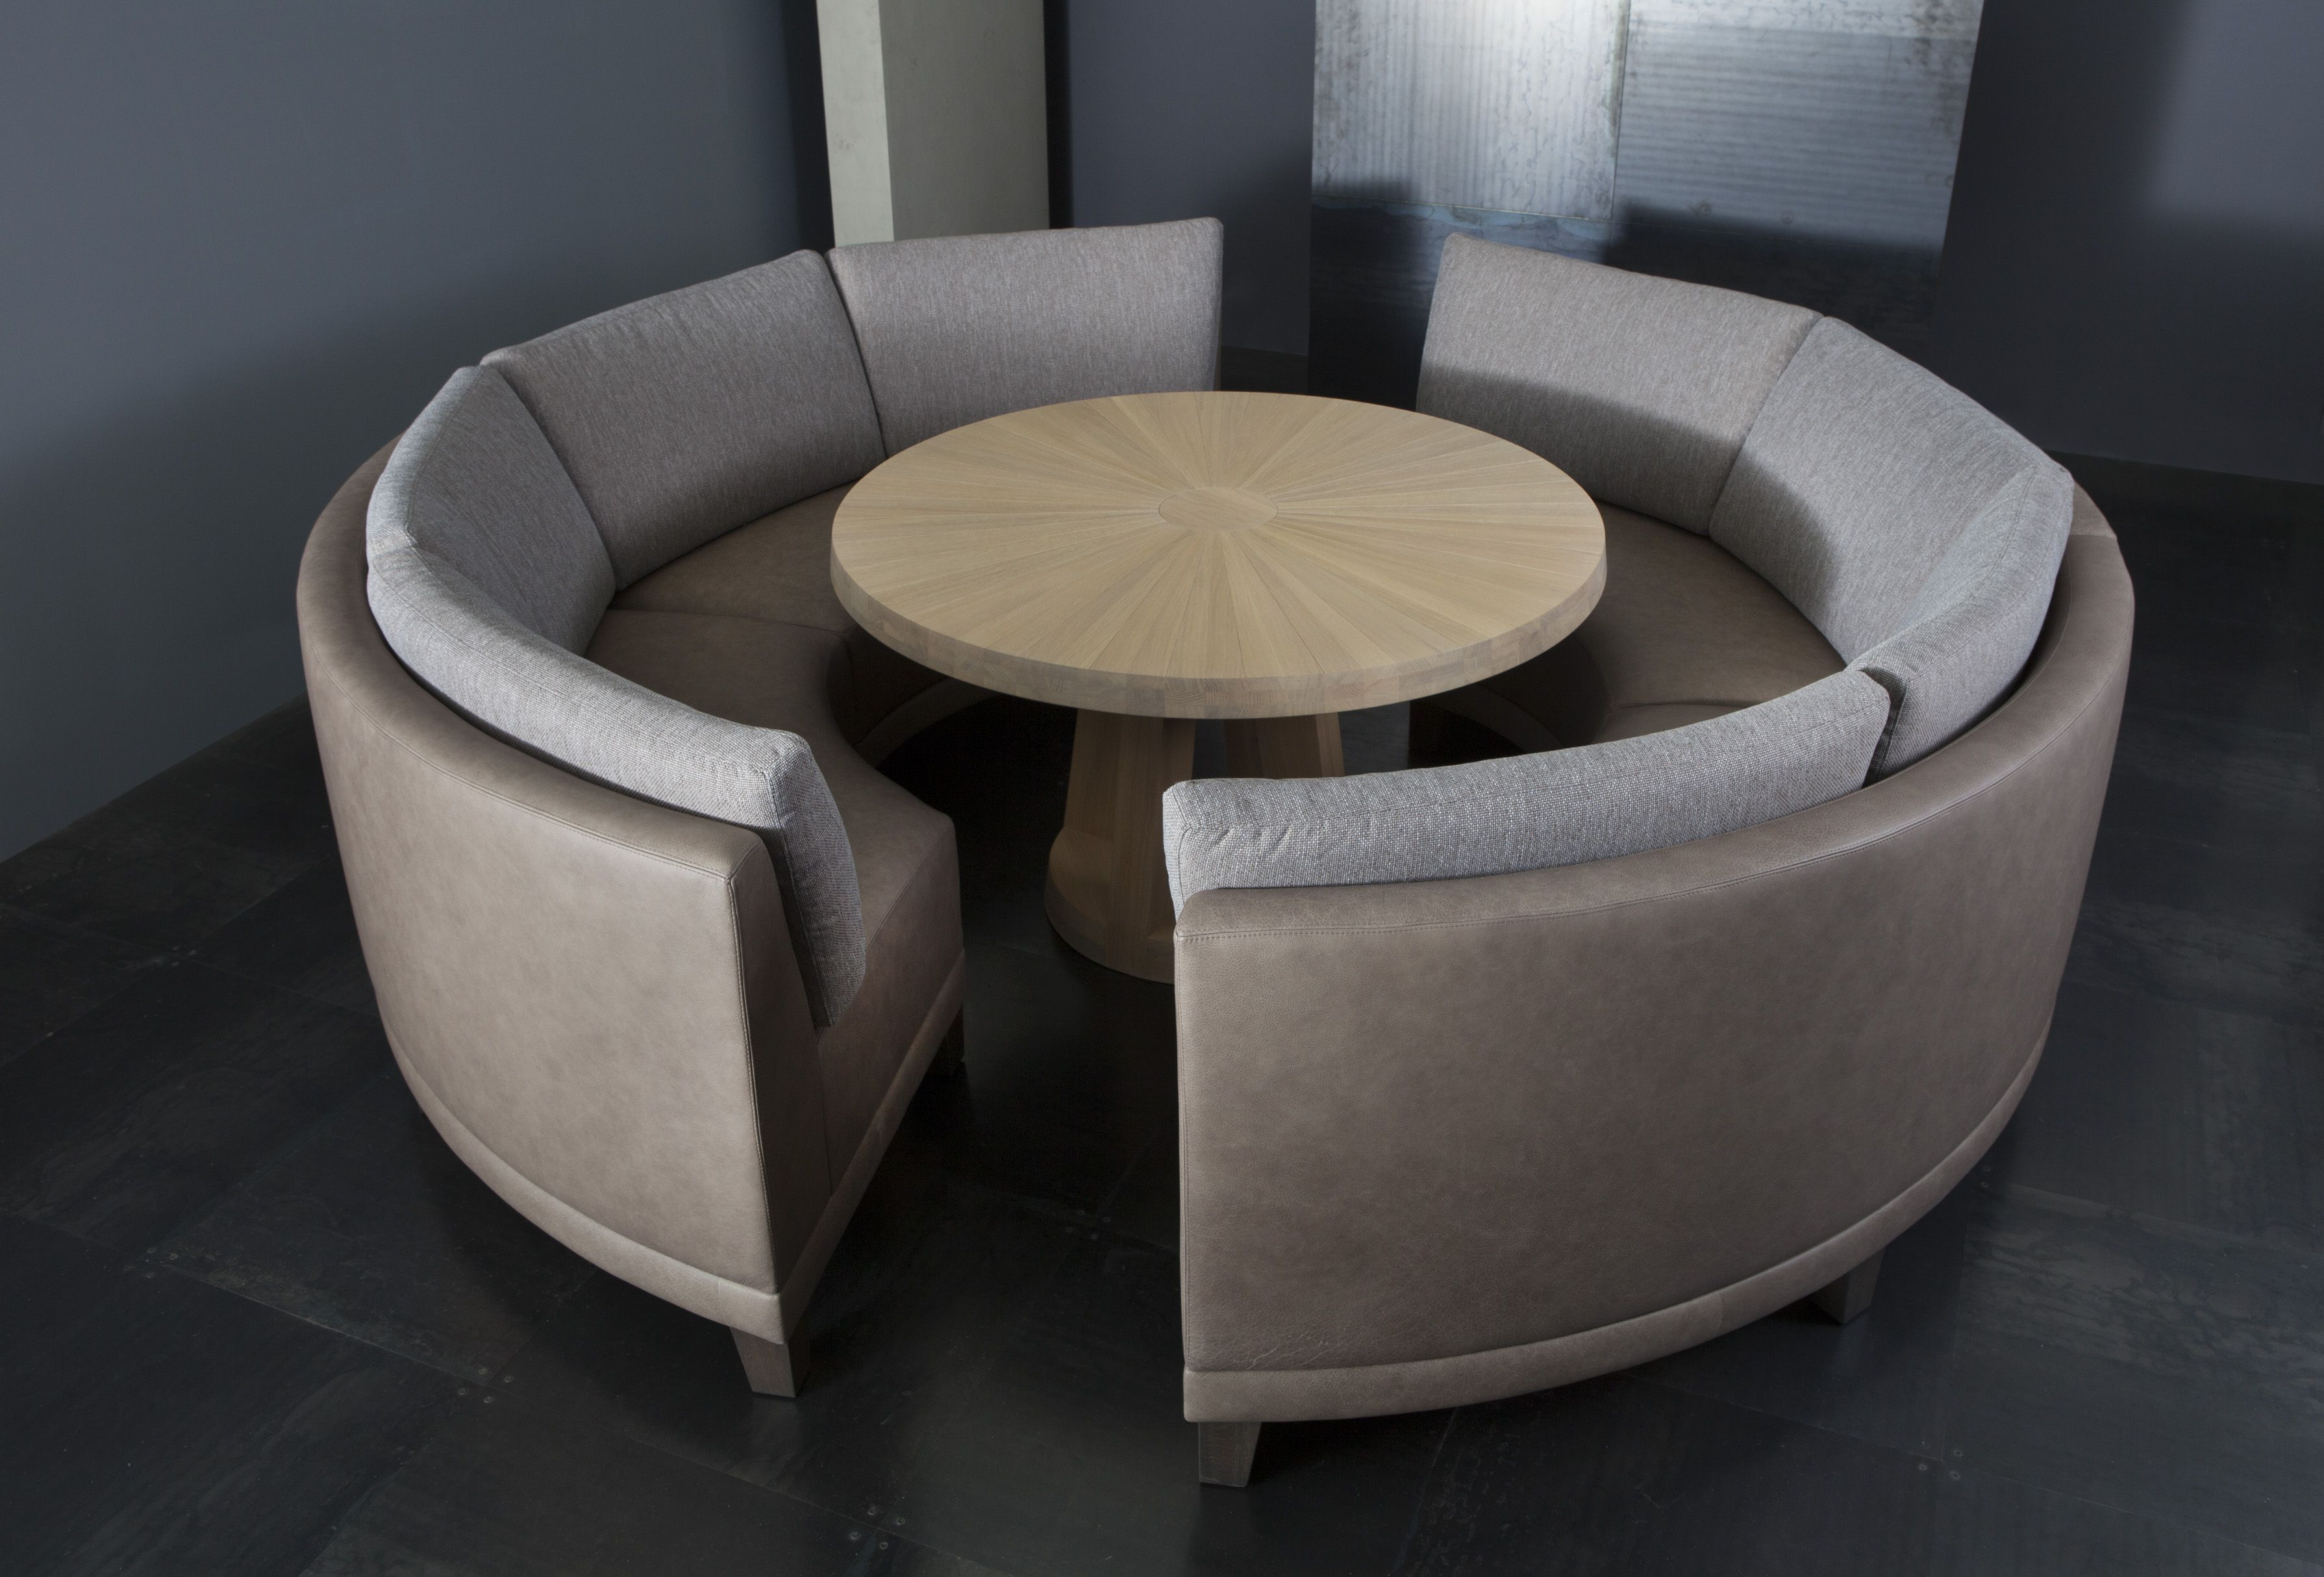 meijers furniture. Curve Dining Sofa; Remy Meijers Collection Furniture